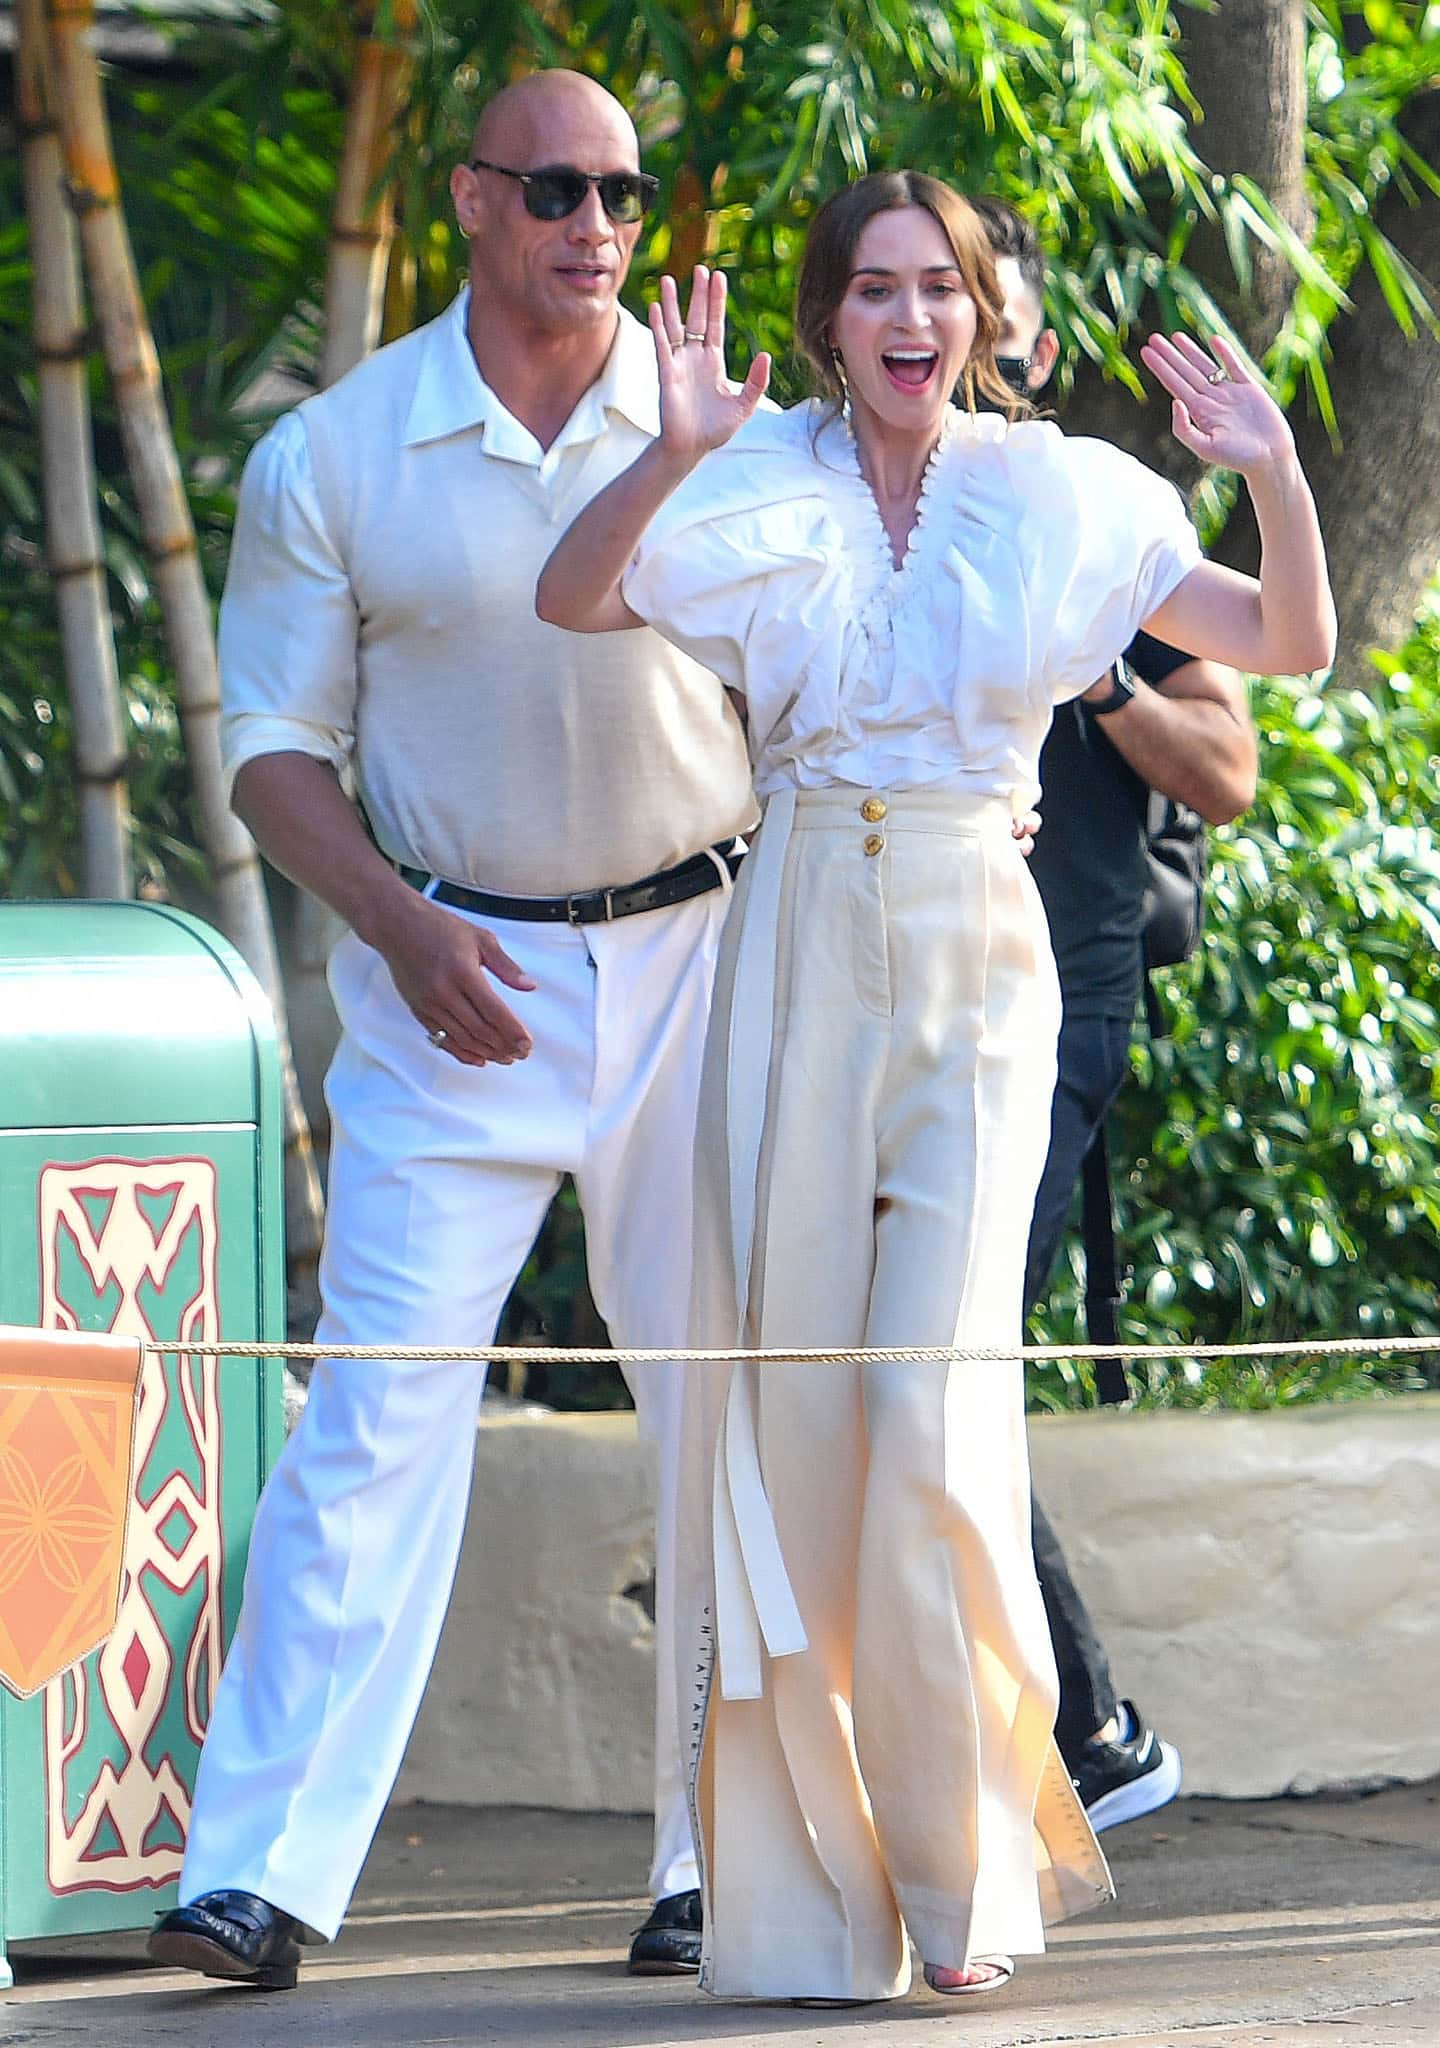 Dwayne Johnson and Emily Blunt ride the Jungle Cruise attraction at Disneyland in Anaheim, California on July 24, 2021